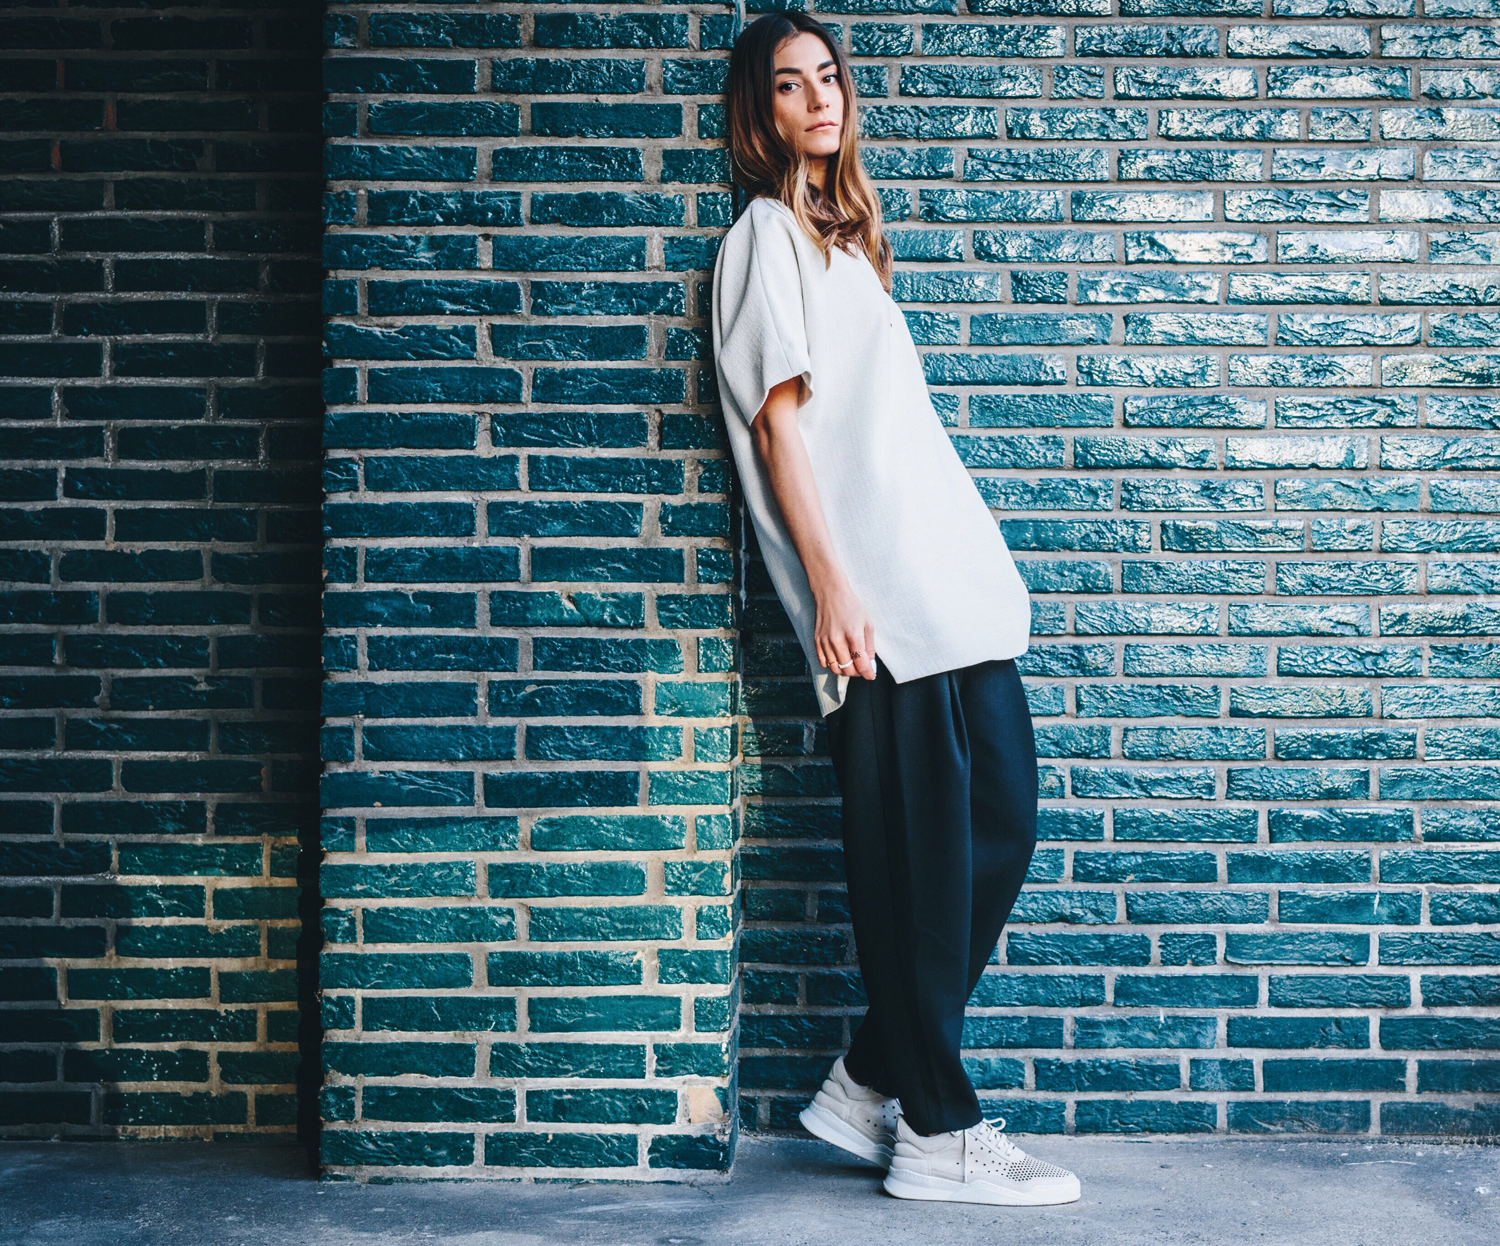 Ays_Yuva_Oversized_V-Neck_FillingPieces_Sneakers_13